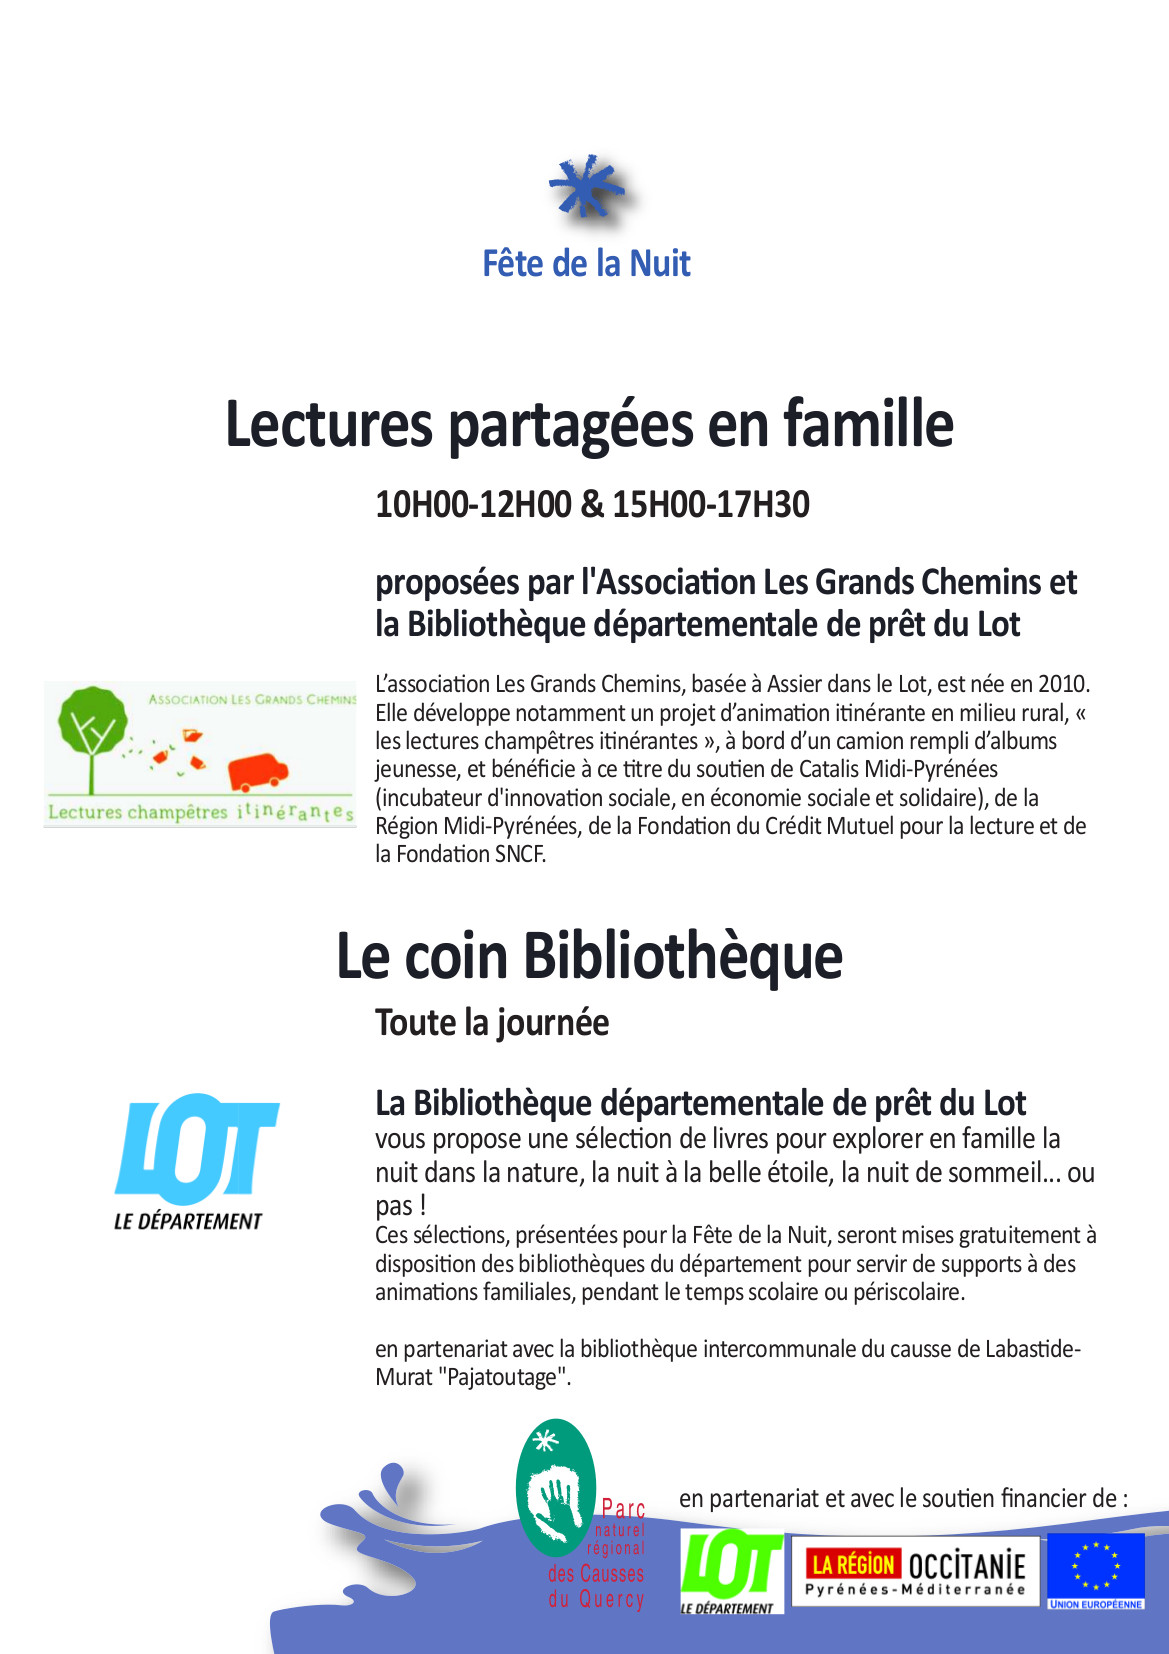 signaletique_lectures